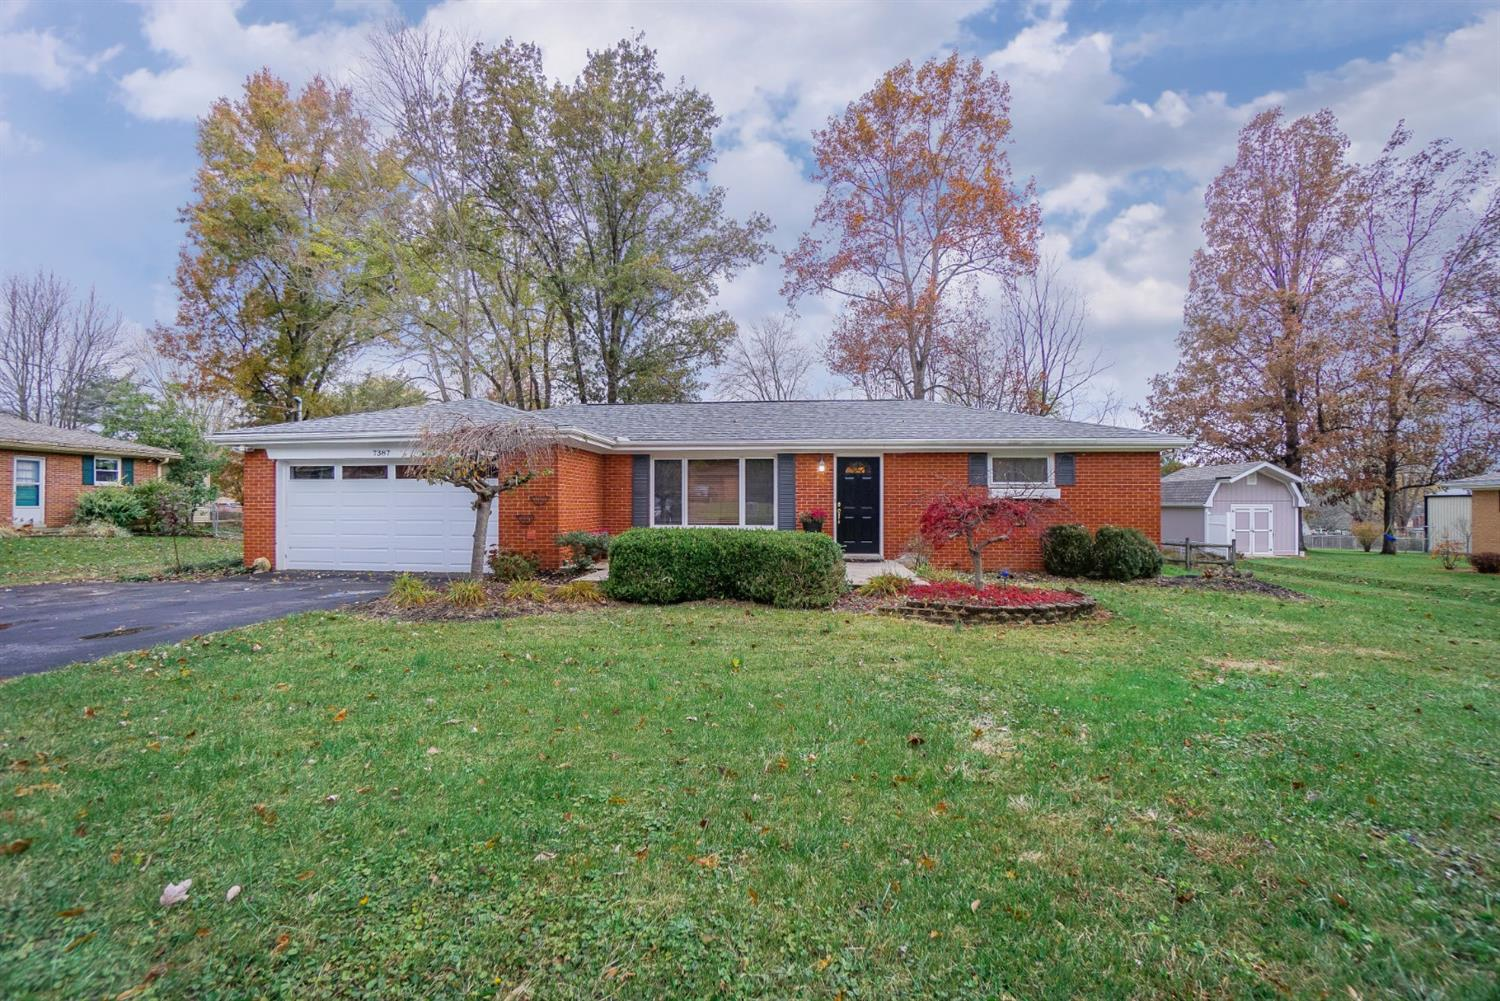 Property for sale at 7387 Robin Drive, Hamilton Twp,  OH 45039